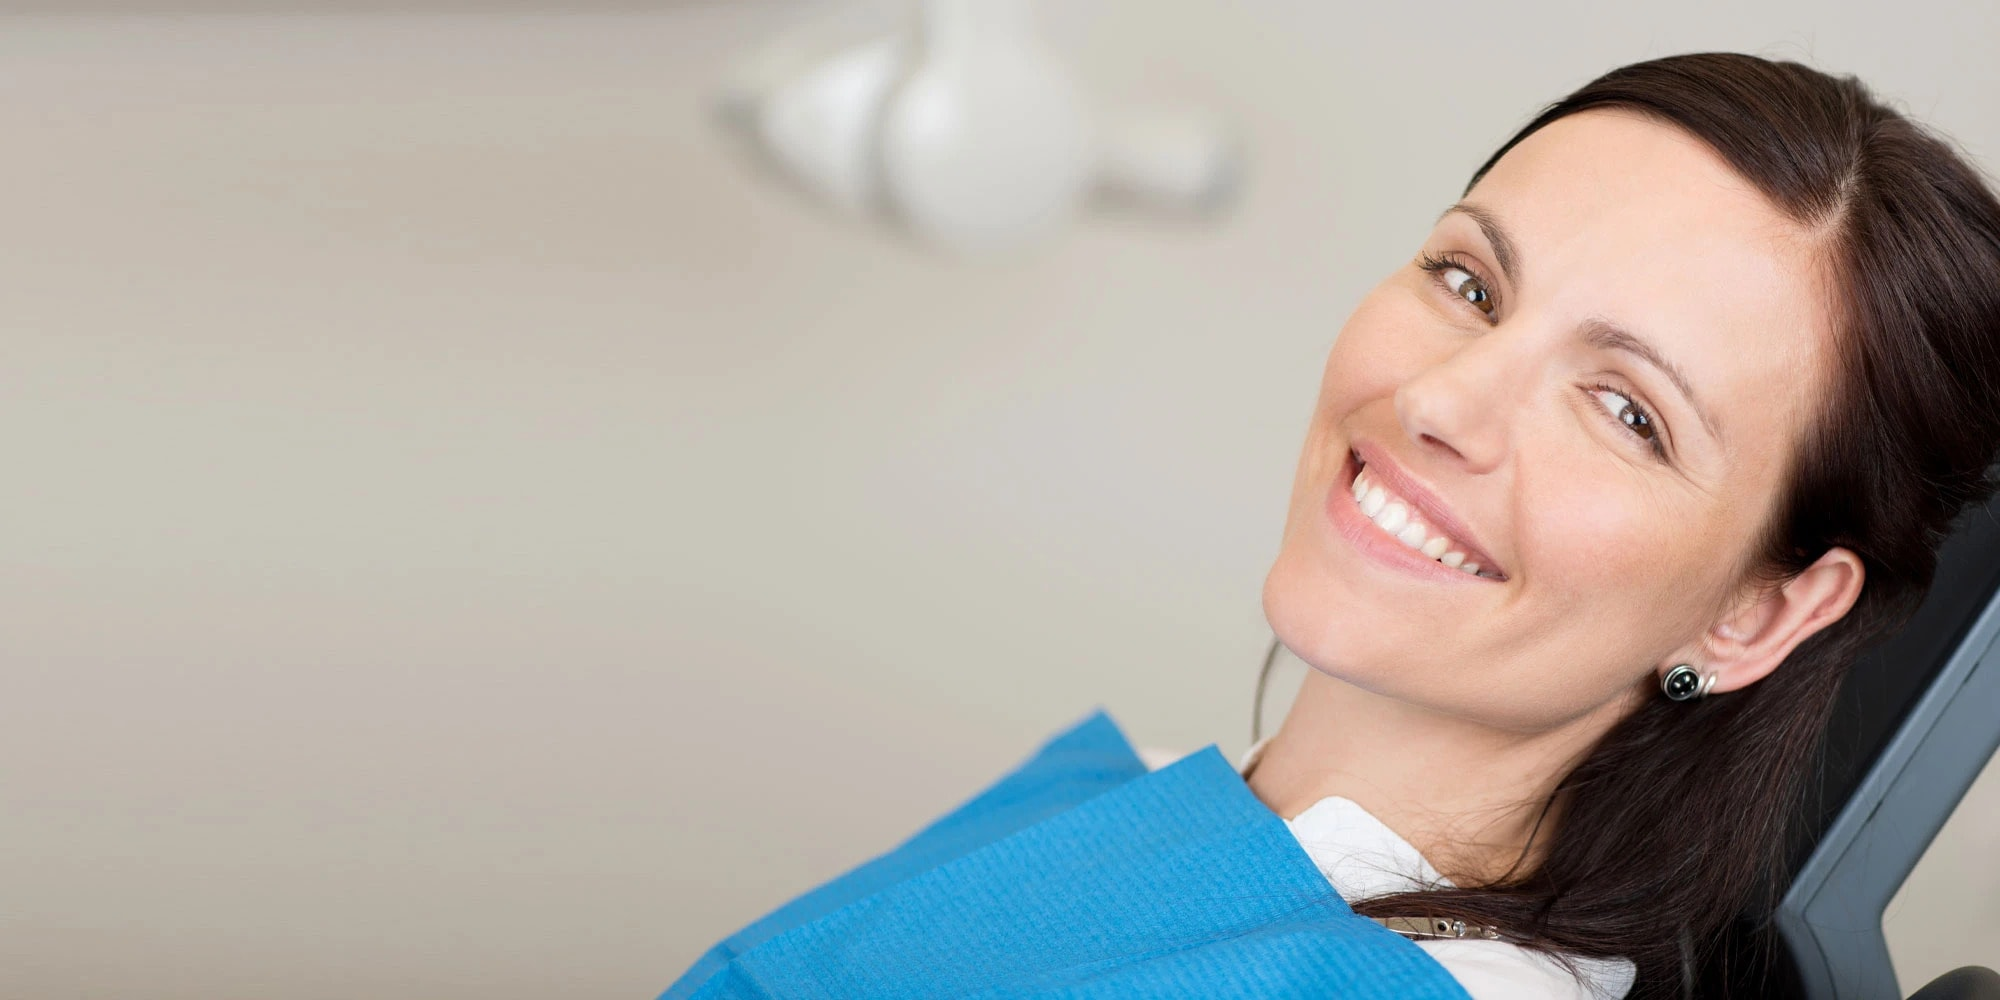 dental patient smiling after dental procedure